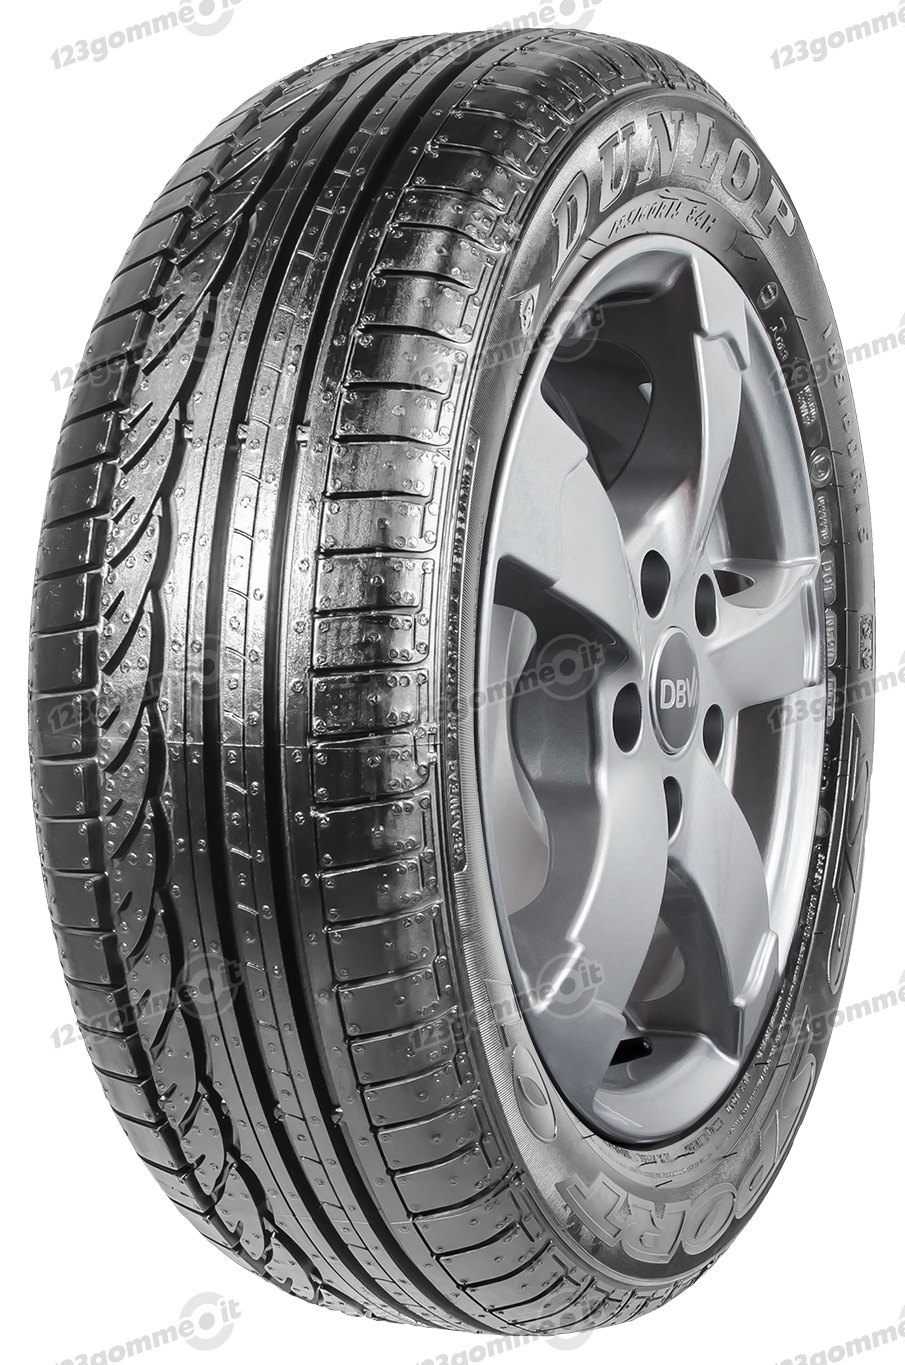 215/40 R18 89W SP Sport 01 XL MFS  SP Sport 01 XL MFS